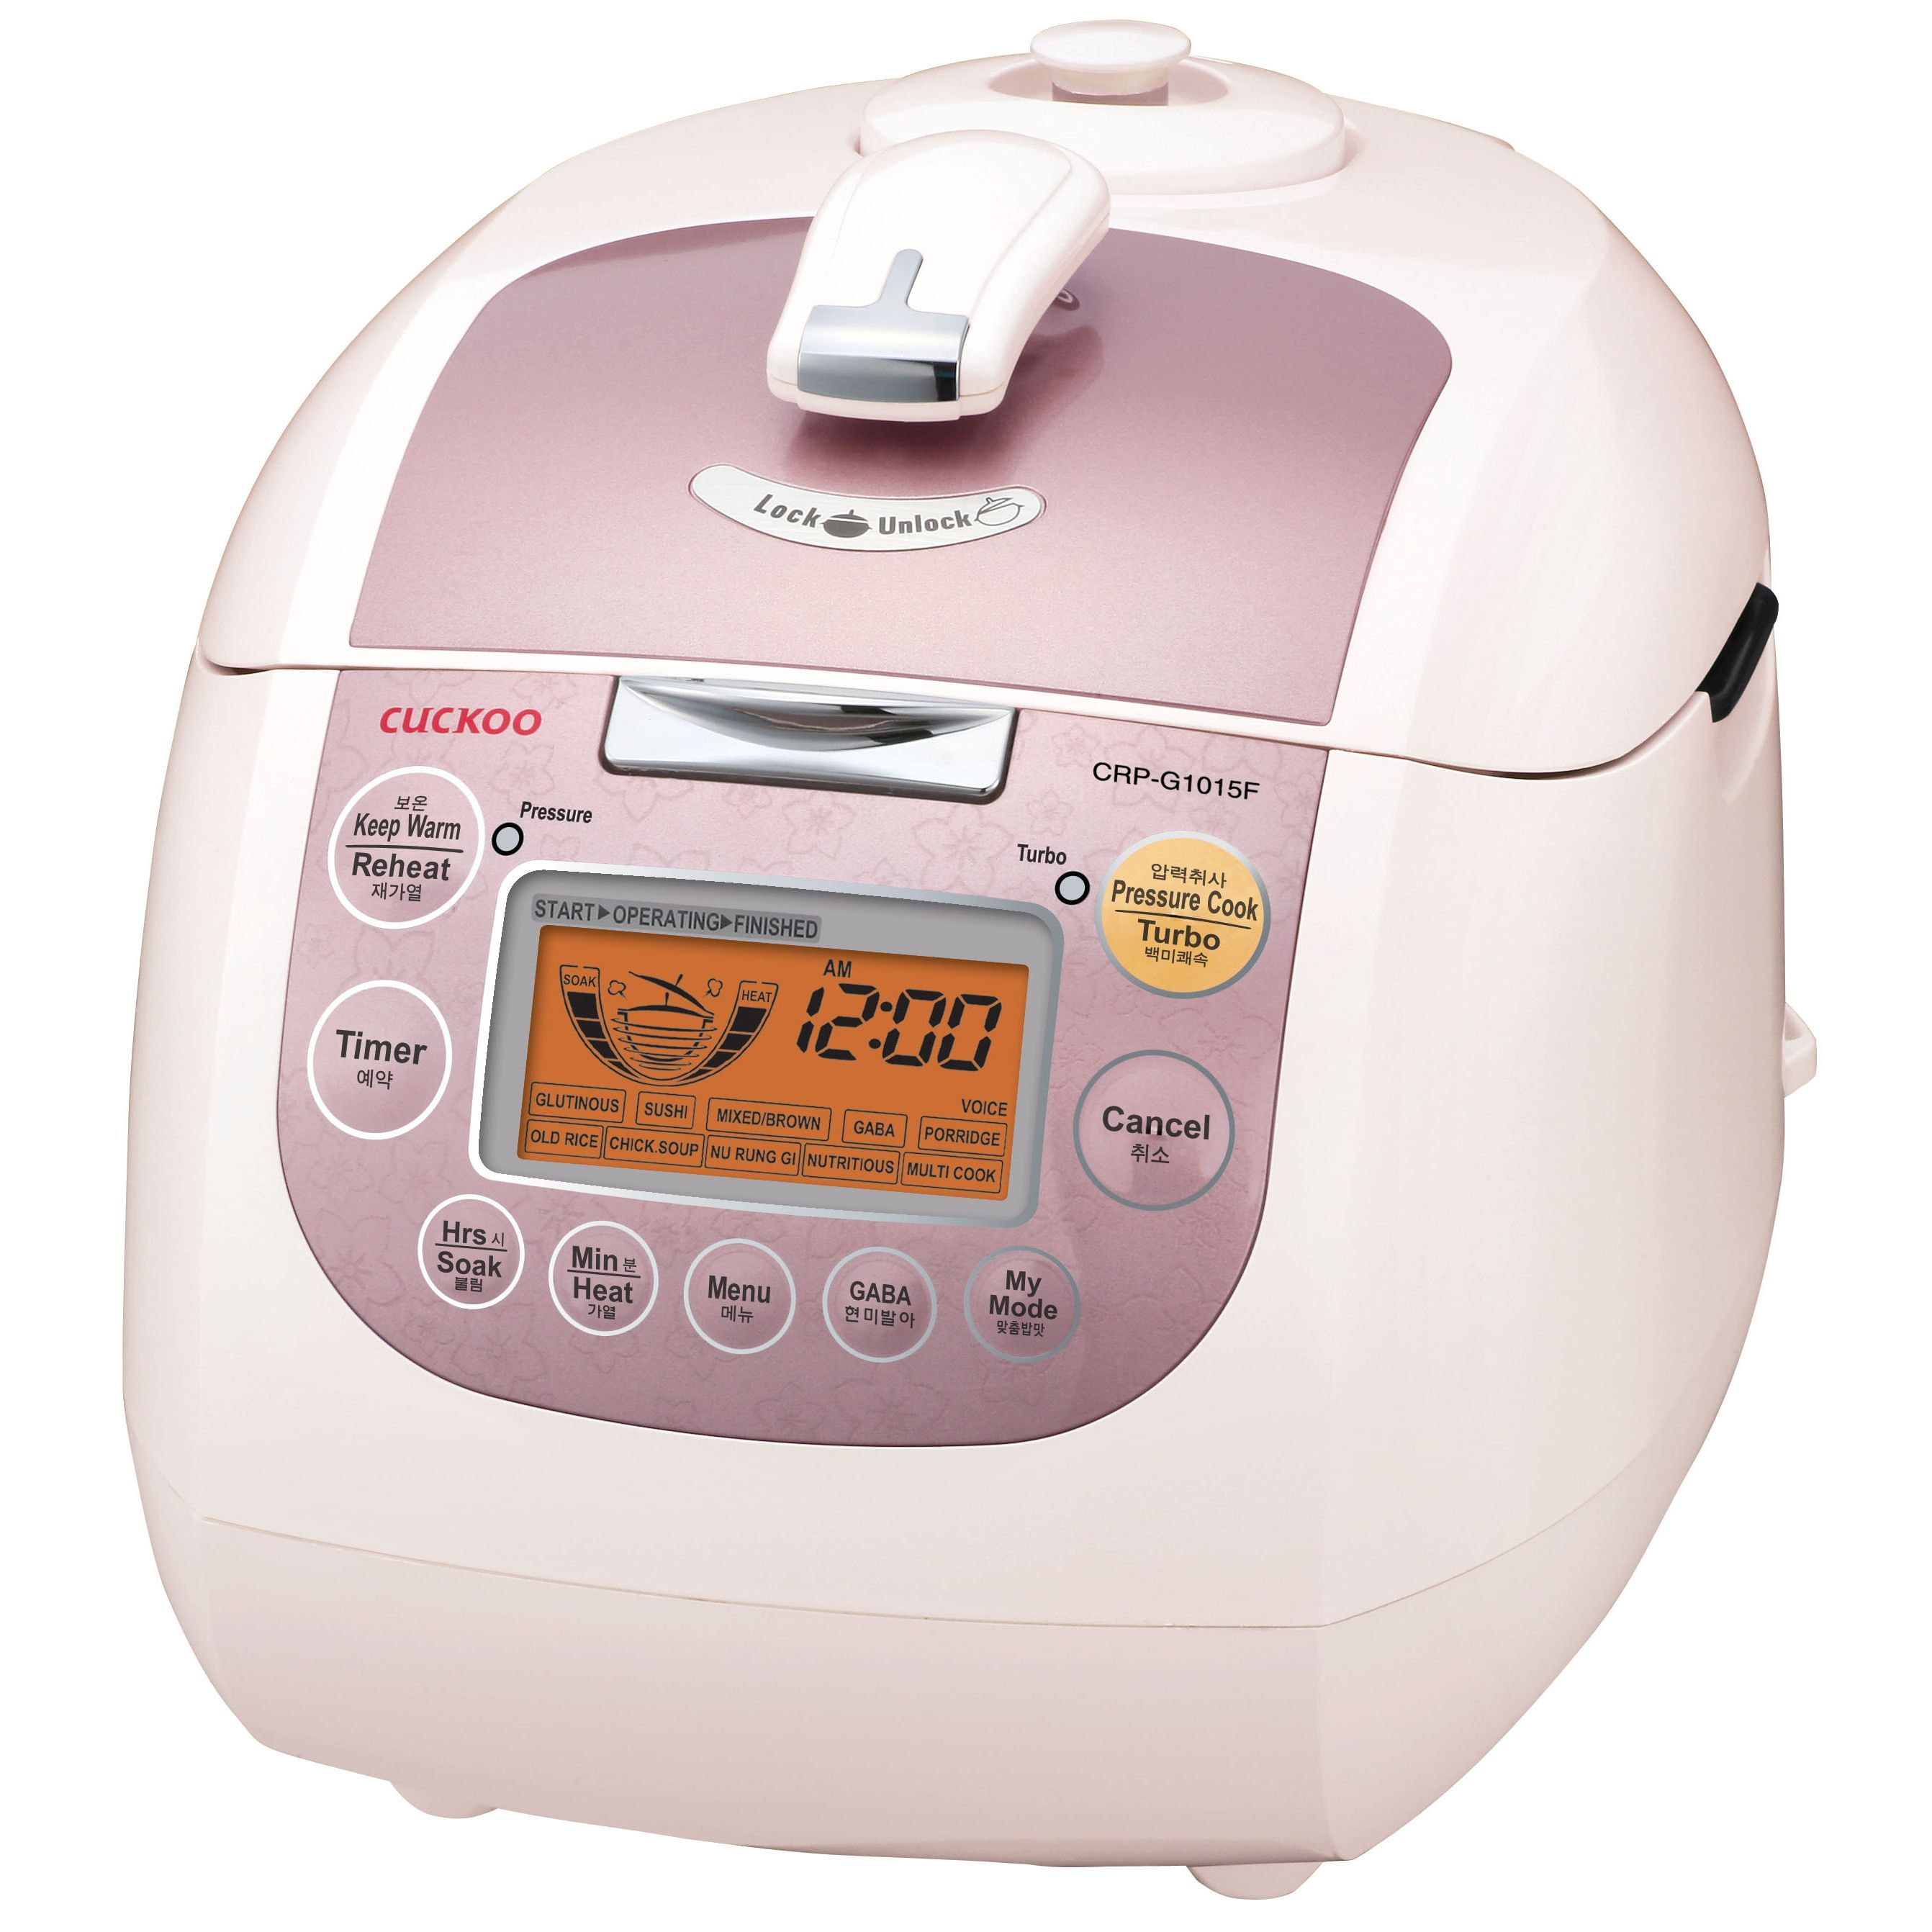 Cuckoo Crp G1015f 10 Cups Electric Pressure Rice Cooker